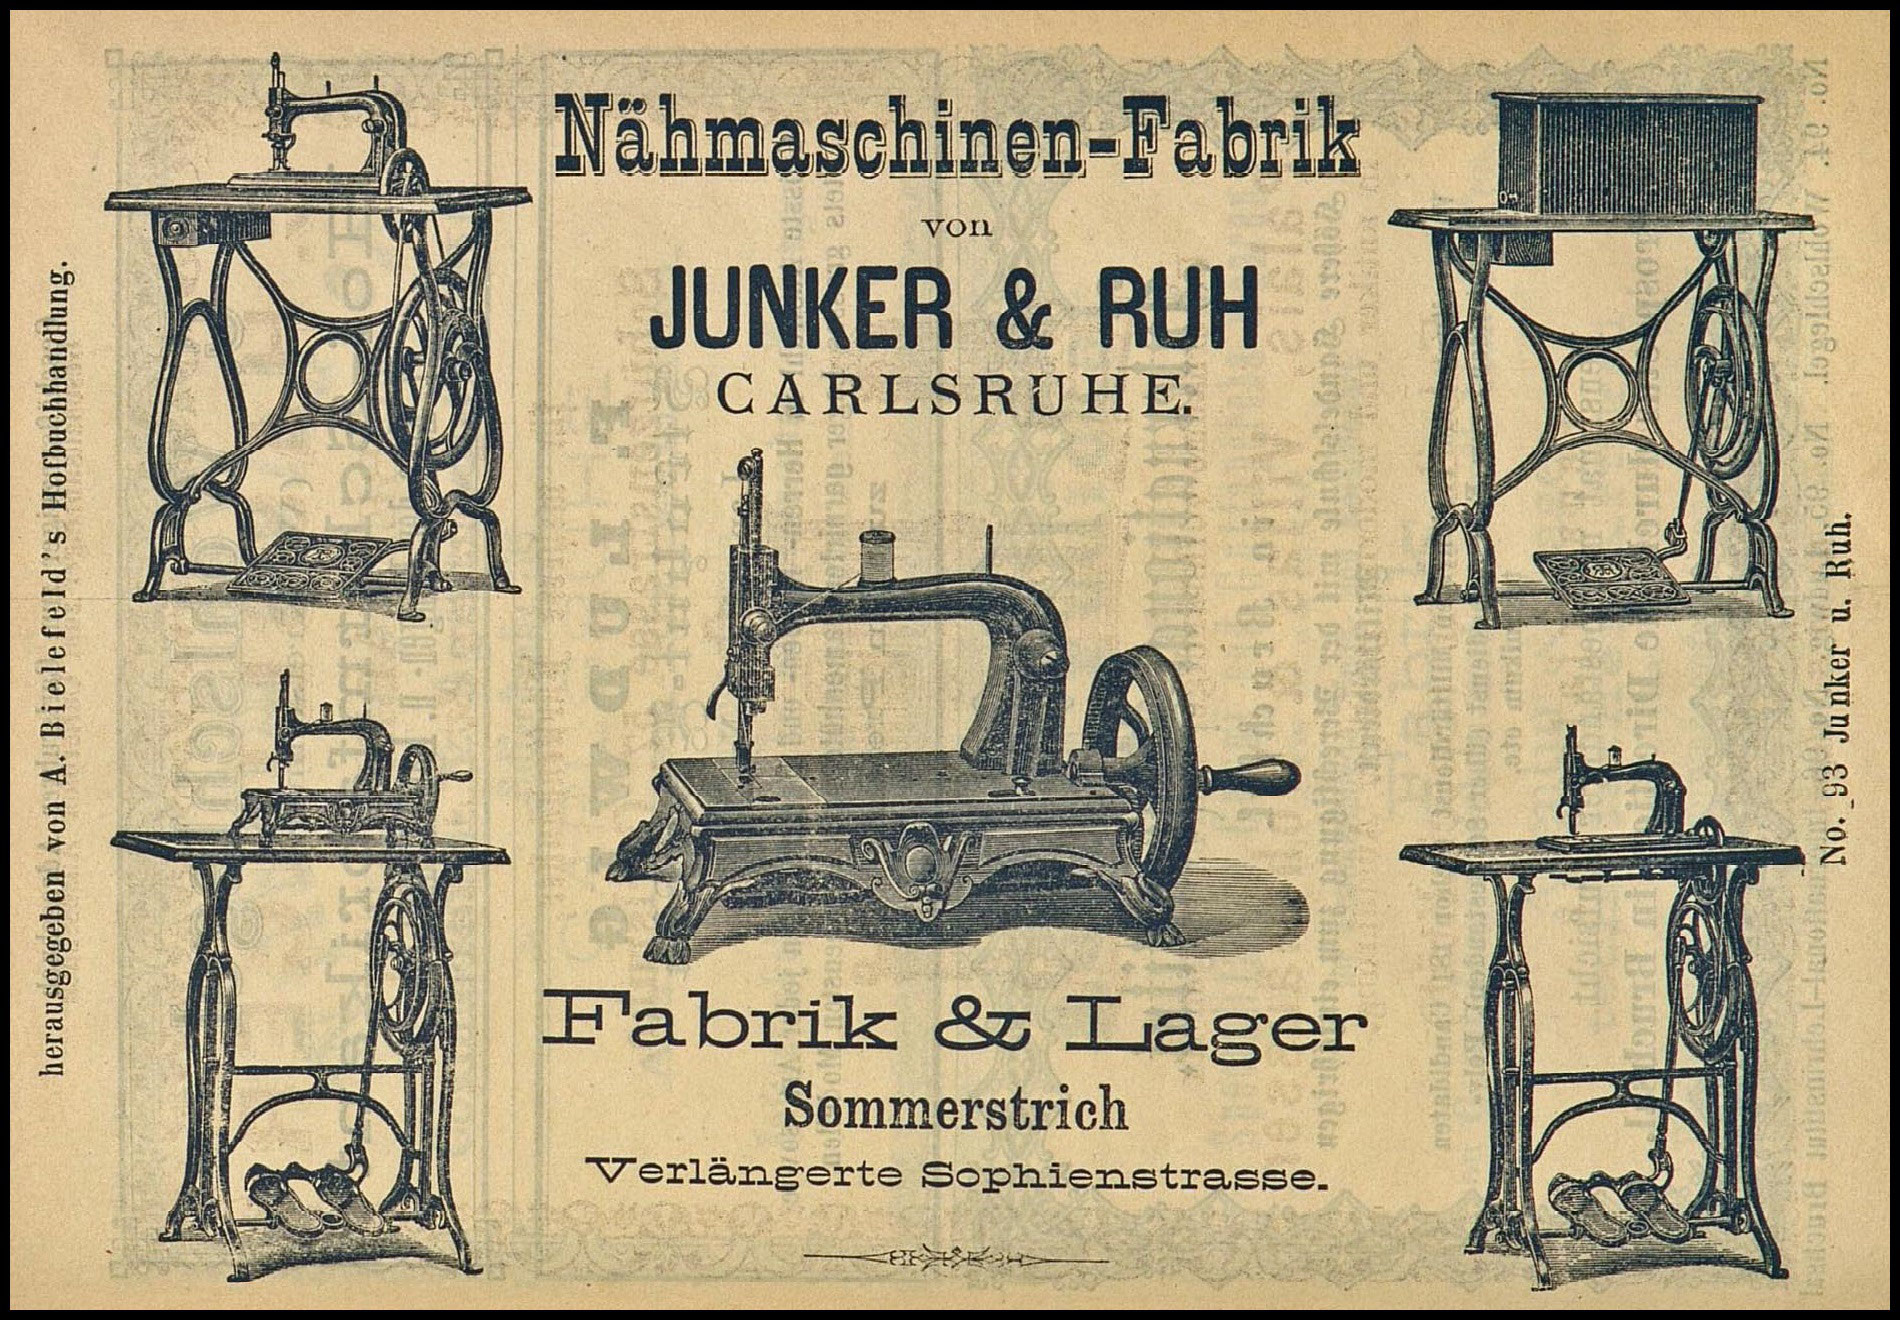 Junker & Ruh Sewing Machines - Fiddlebase